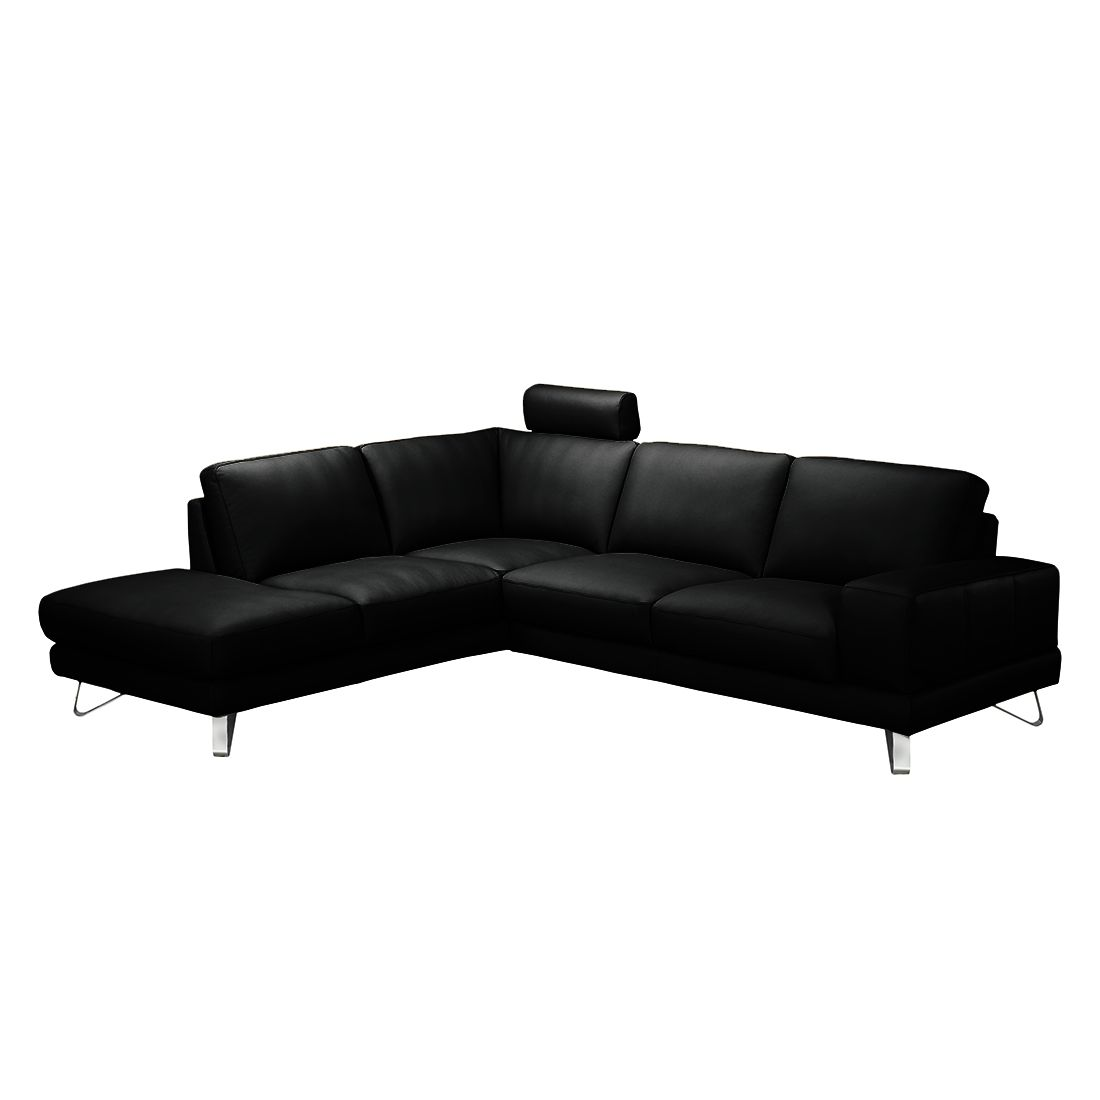 ecksofa bradley kunstleder schwarz ottomane davorstehend links ohne kopfst tze loftscape. Black Bedroom Furniture Sets. Home Design Ideas